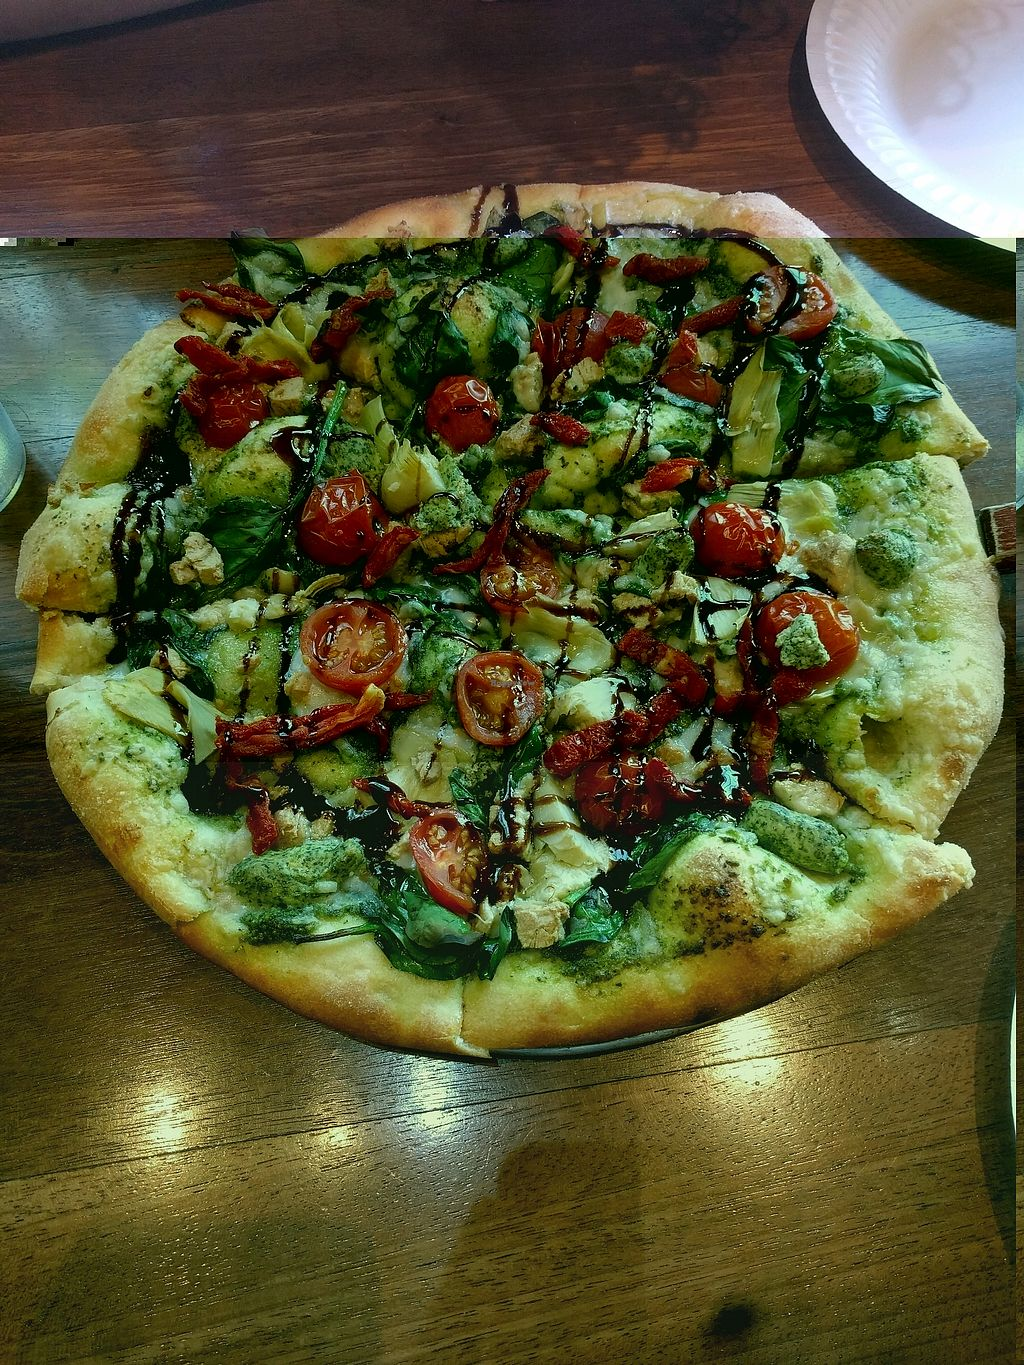 """Photo of Purgatory Pizza  by <a href=""""/members/profile/flocho"""">flocho</a> <br/>vegan and sara pizza! <br/> February 28, 2018  - <a href='/contact/abuse/image/26622/364704'>Report</a>"""